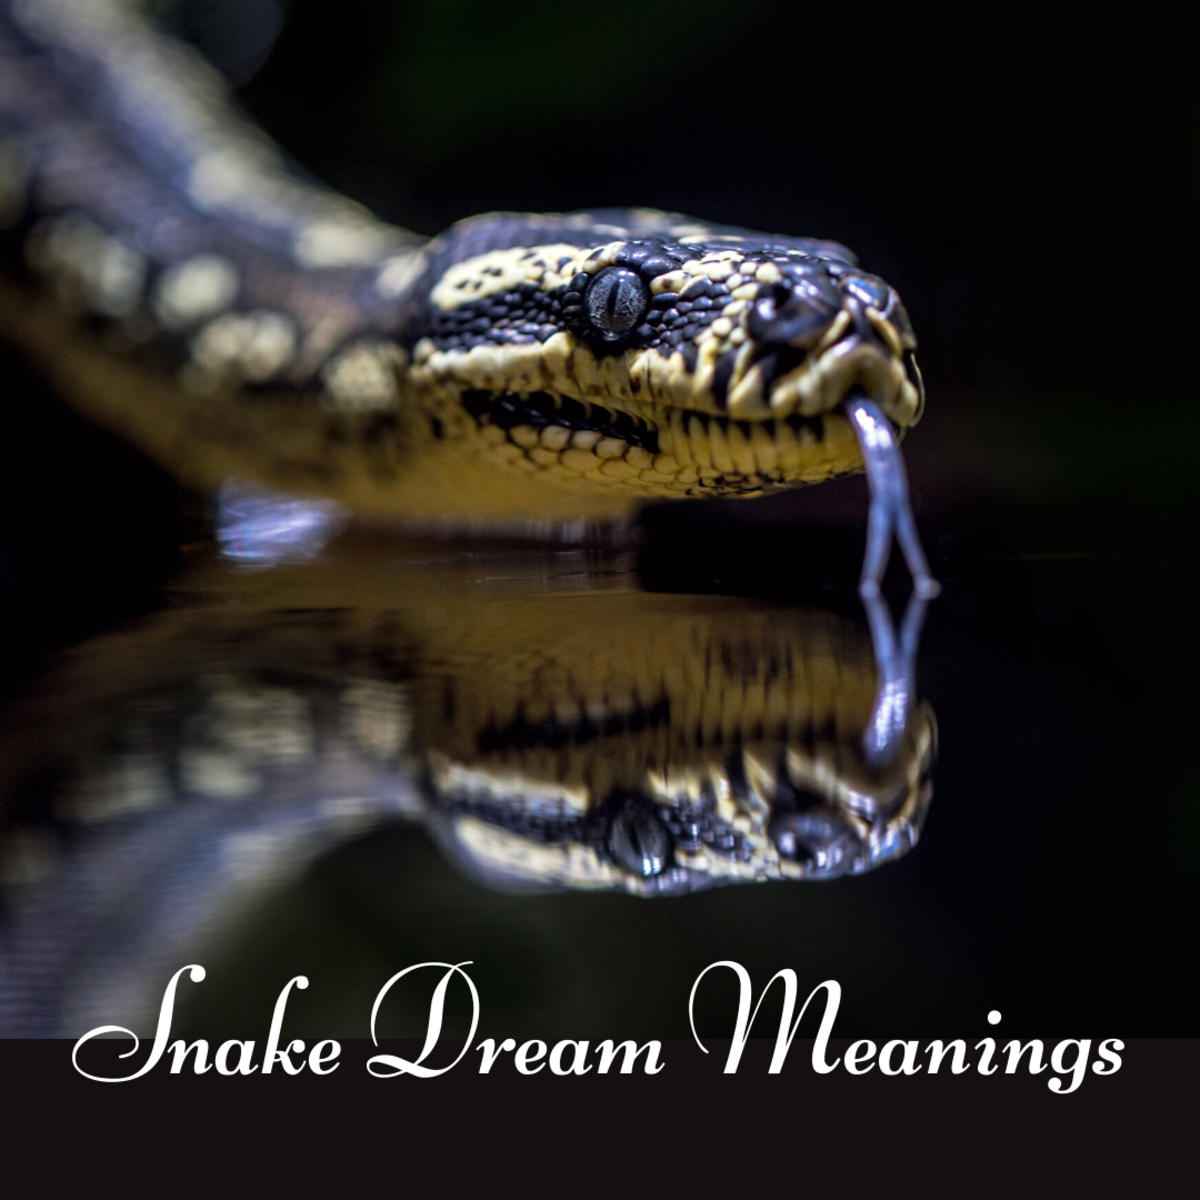 Snake Dream Meanings, Symbolism, and Interpretations